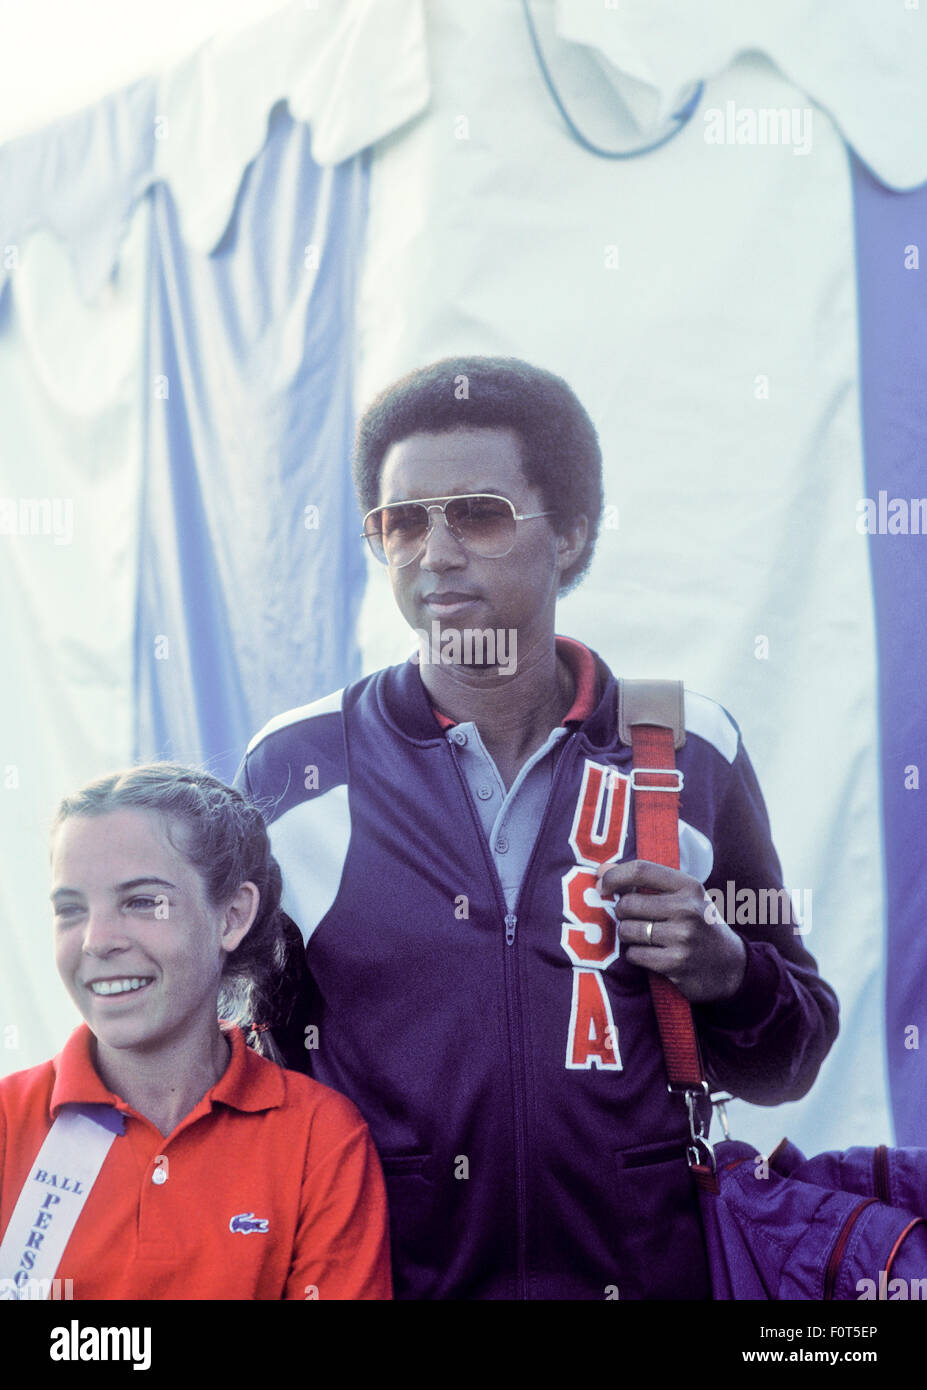 Arthur Ashe spectating at tennis tournament at La Costa Resort in Carlsbad, California in March, 1982. - Stock Image